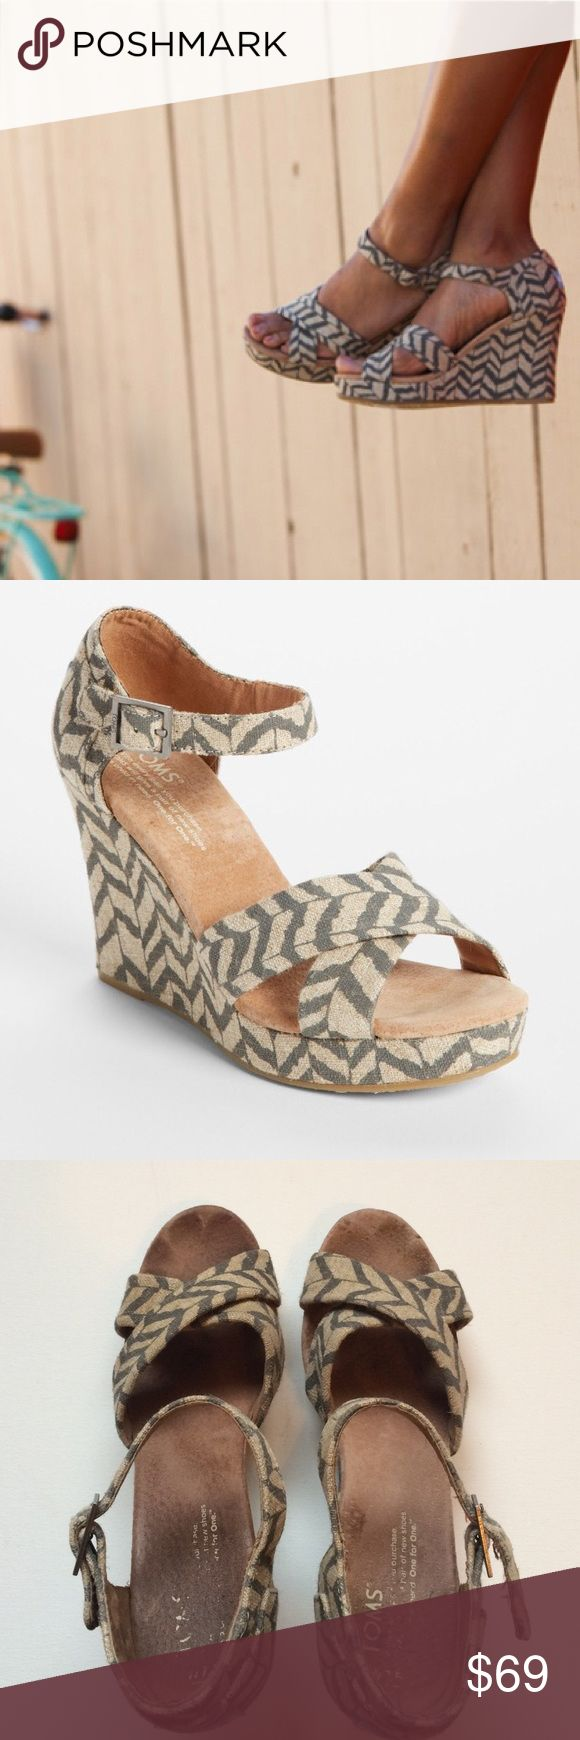 """TOMS Classic - Zebra Zag' Wedge Exotic stripes lend chevron chic to a classically comfy wedge. Approx. heel height: 4"""" with 1"""" platform (comparable to a 3"""" heel). Hemp upper/suede lining/EVA sole. Outer part of the shoe in great condition. Inside and bottom slight wear. Still has lots of life to them. Any other questions just ask. TOMS Shoes Wedges"""